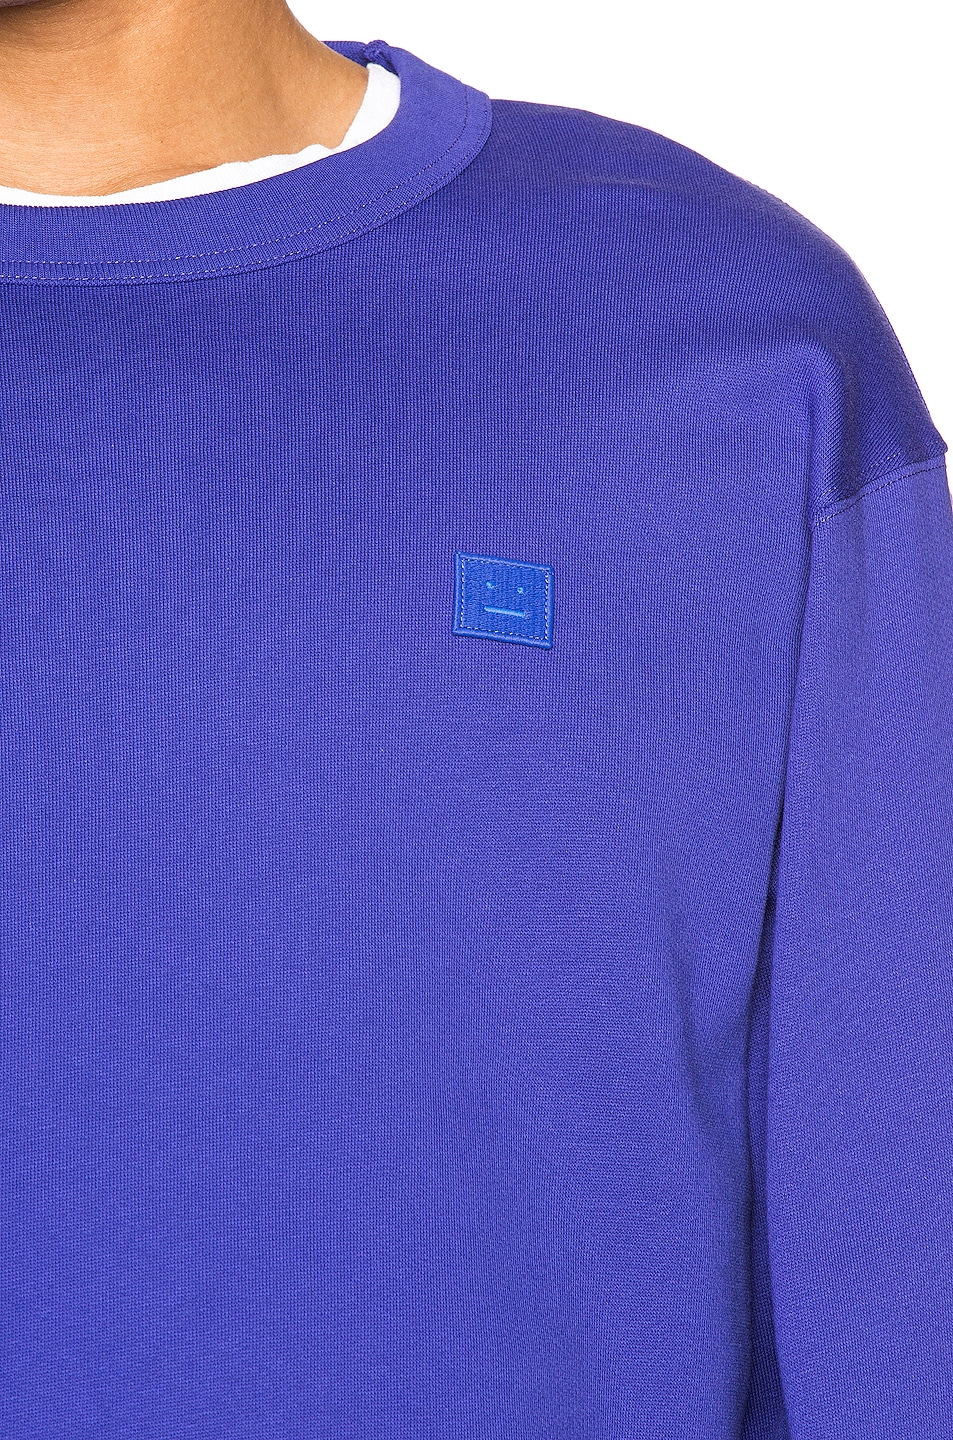 Image 5 of Acne Studios Fairview Face Sweatshirt in Electric Blue